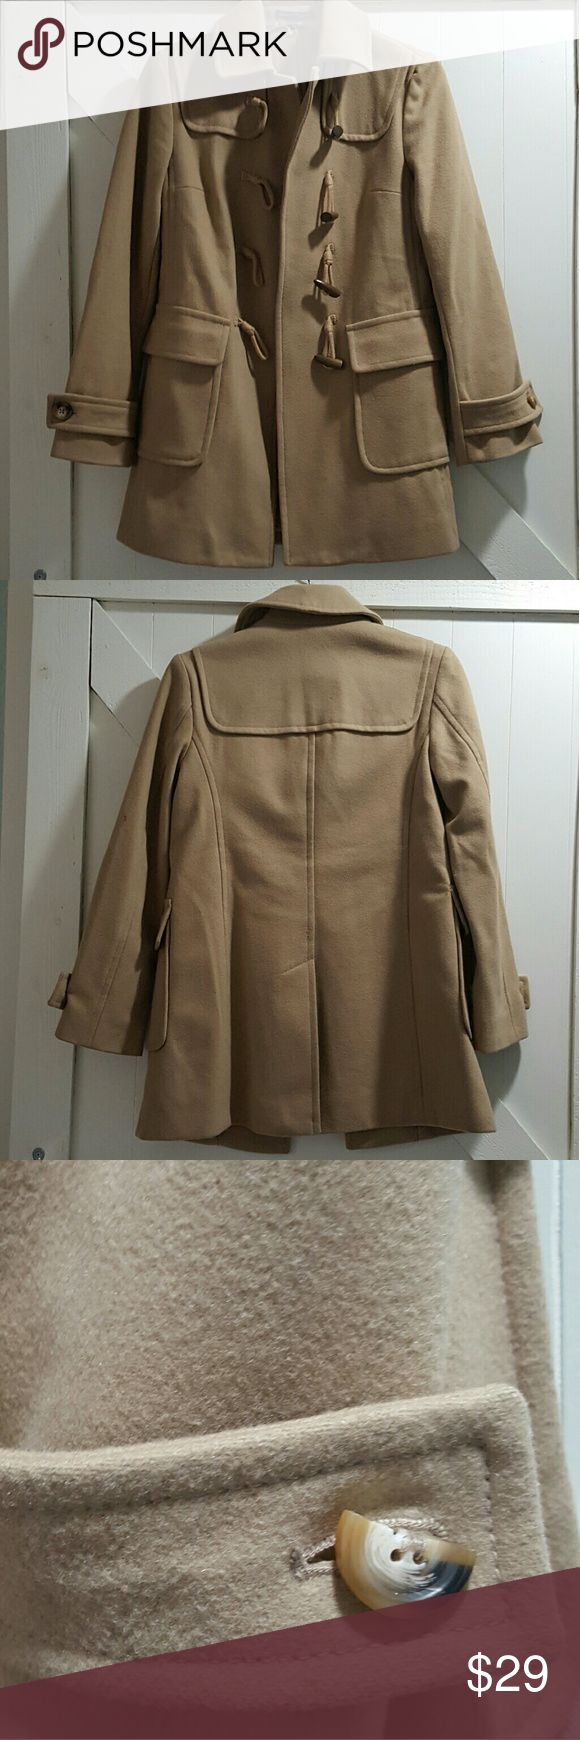 Gap Coat Like new Gap Coat. One chipped button by comes with a replaced  (both pictured). Smoke free home. GAP Jackets & Coats Pea Coats